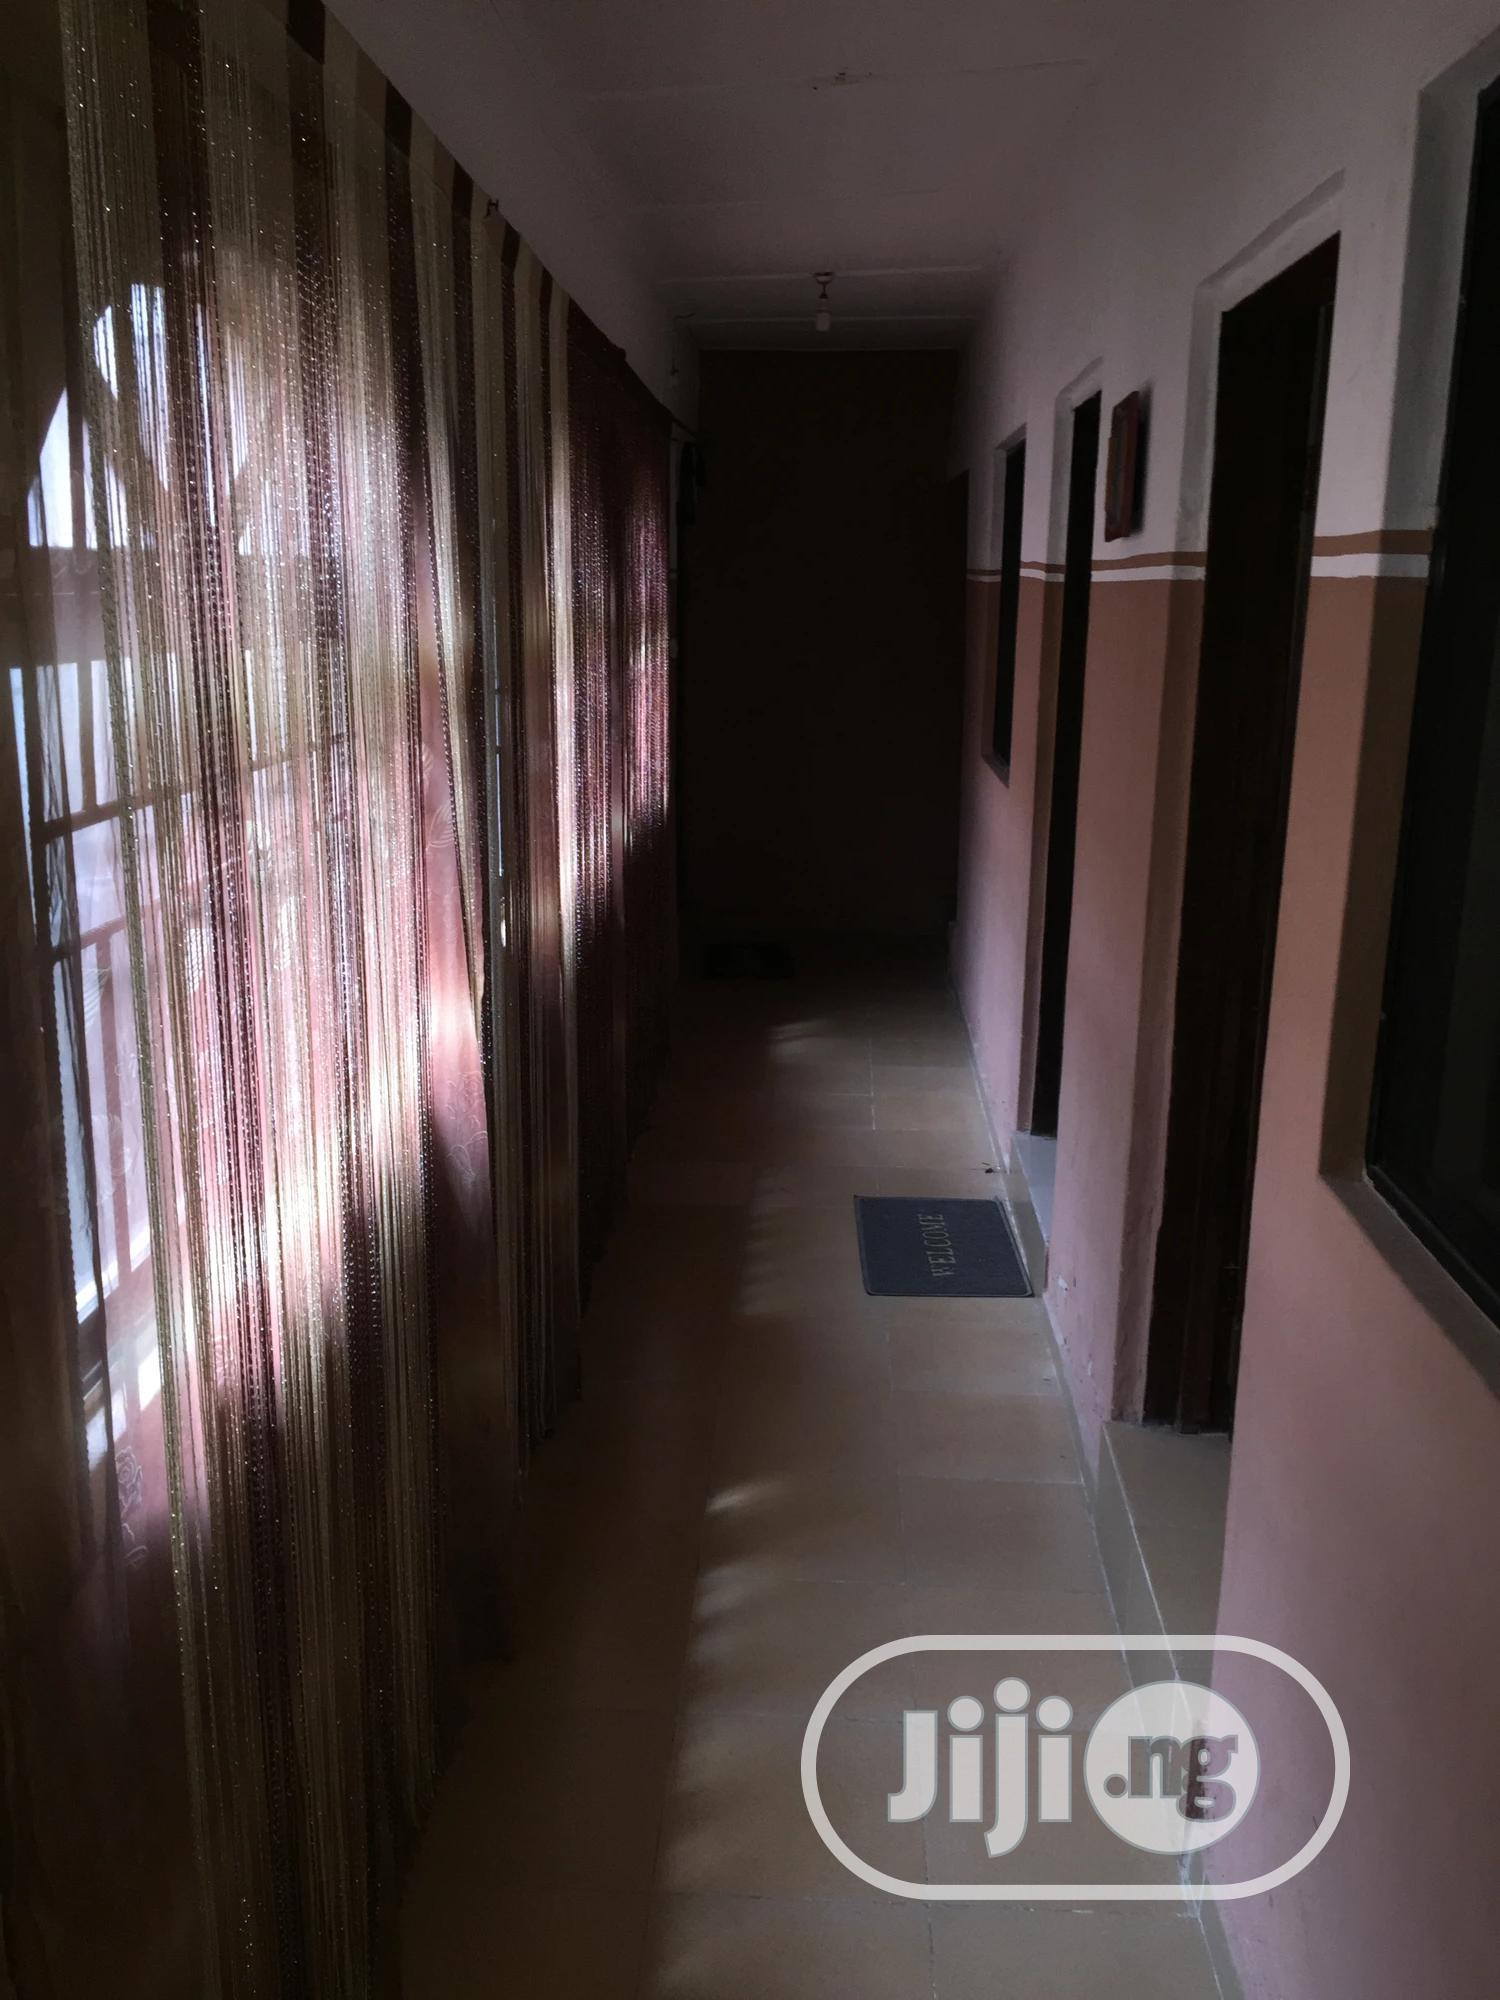 3-bedroom Flat Located At Magbon(Flour Mills Estate) | Houses & Apartments For Rent for sale in Agbara-Igbesan, Lagos State, Nigeria